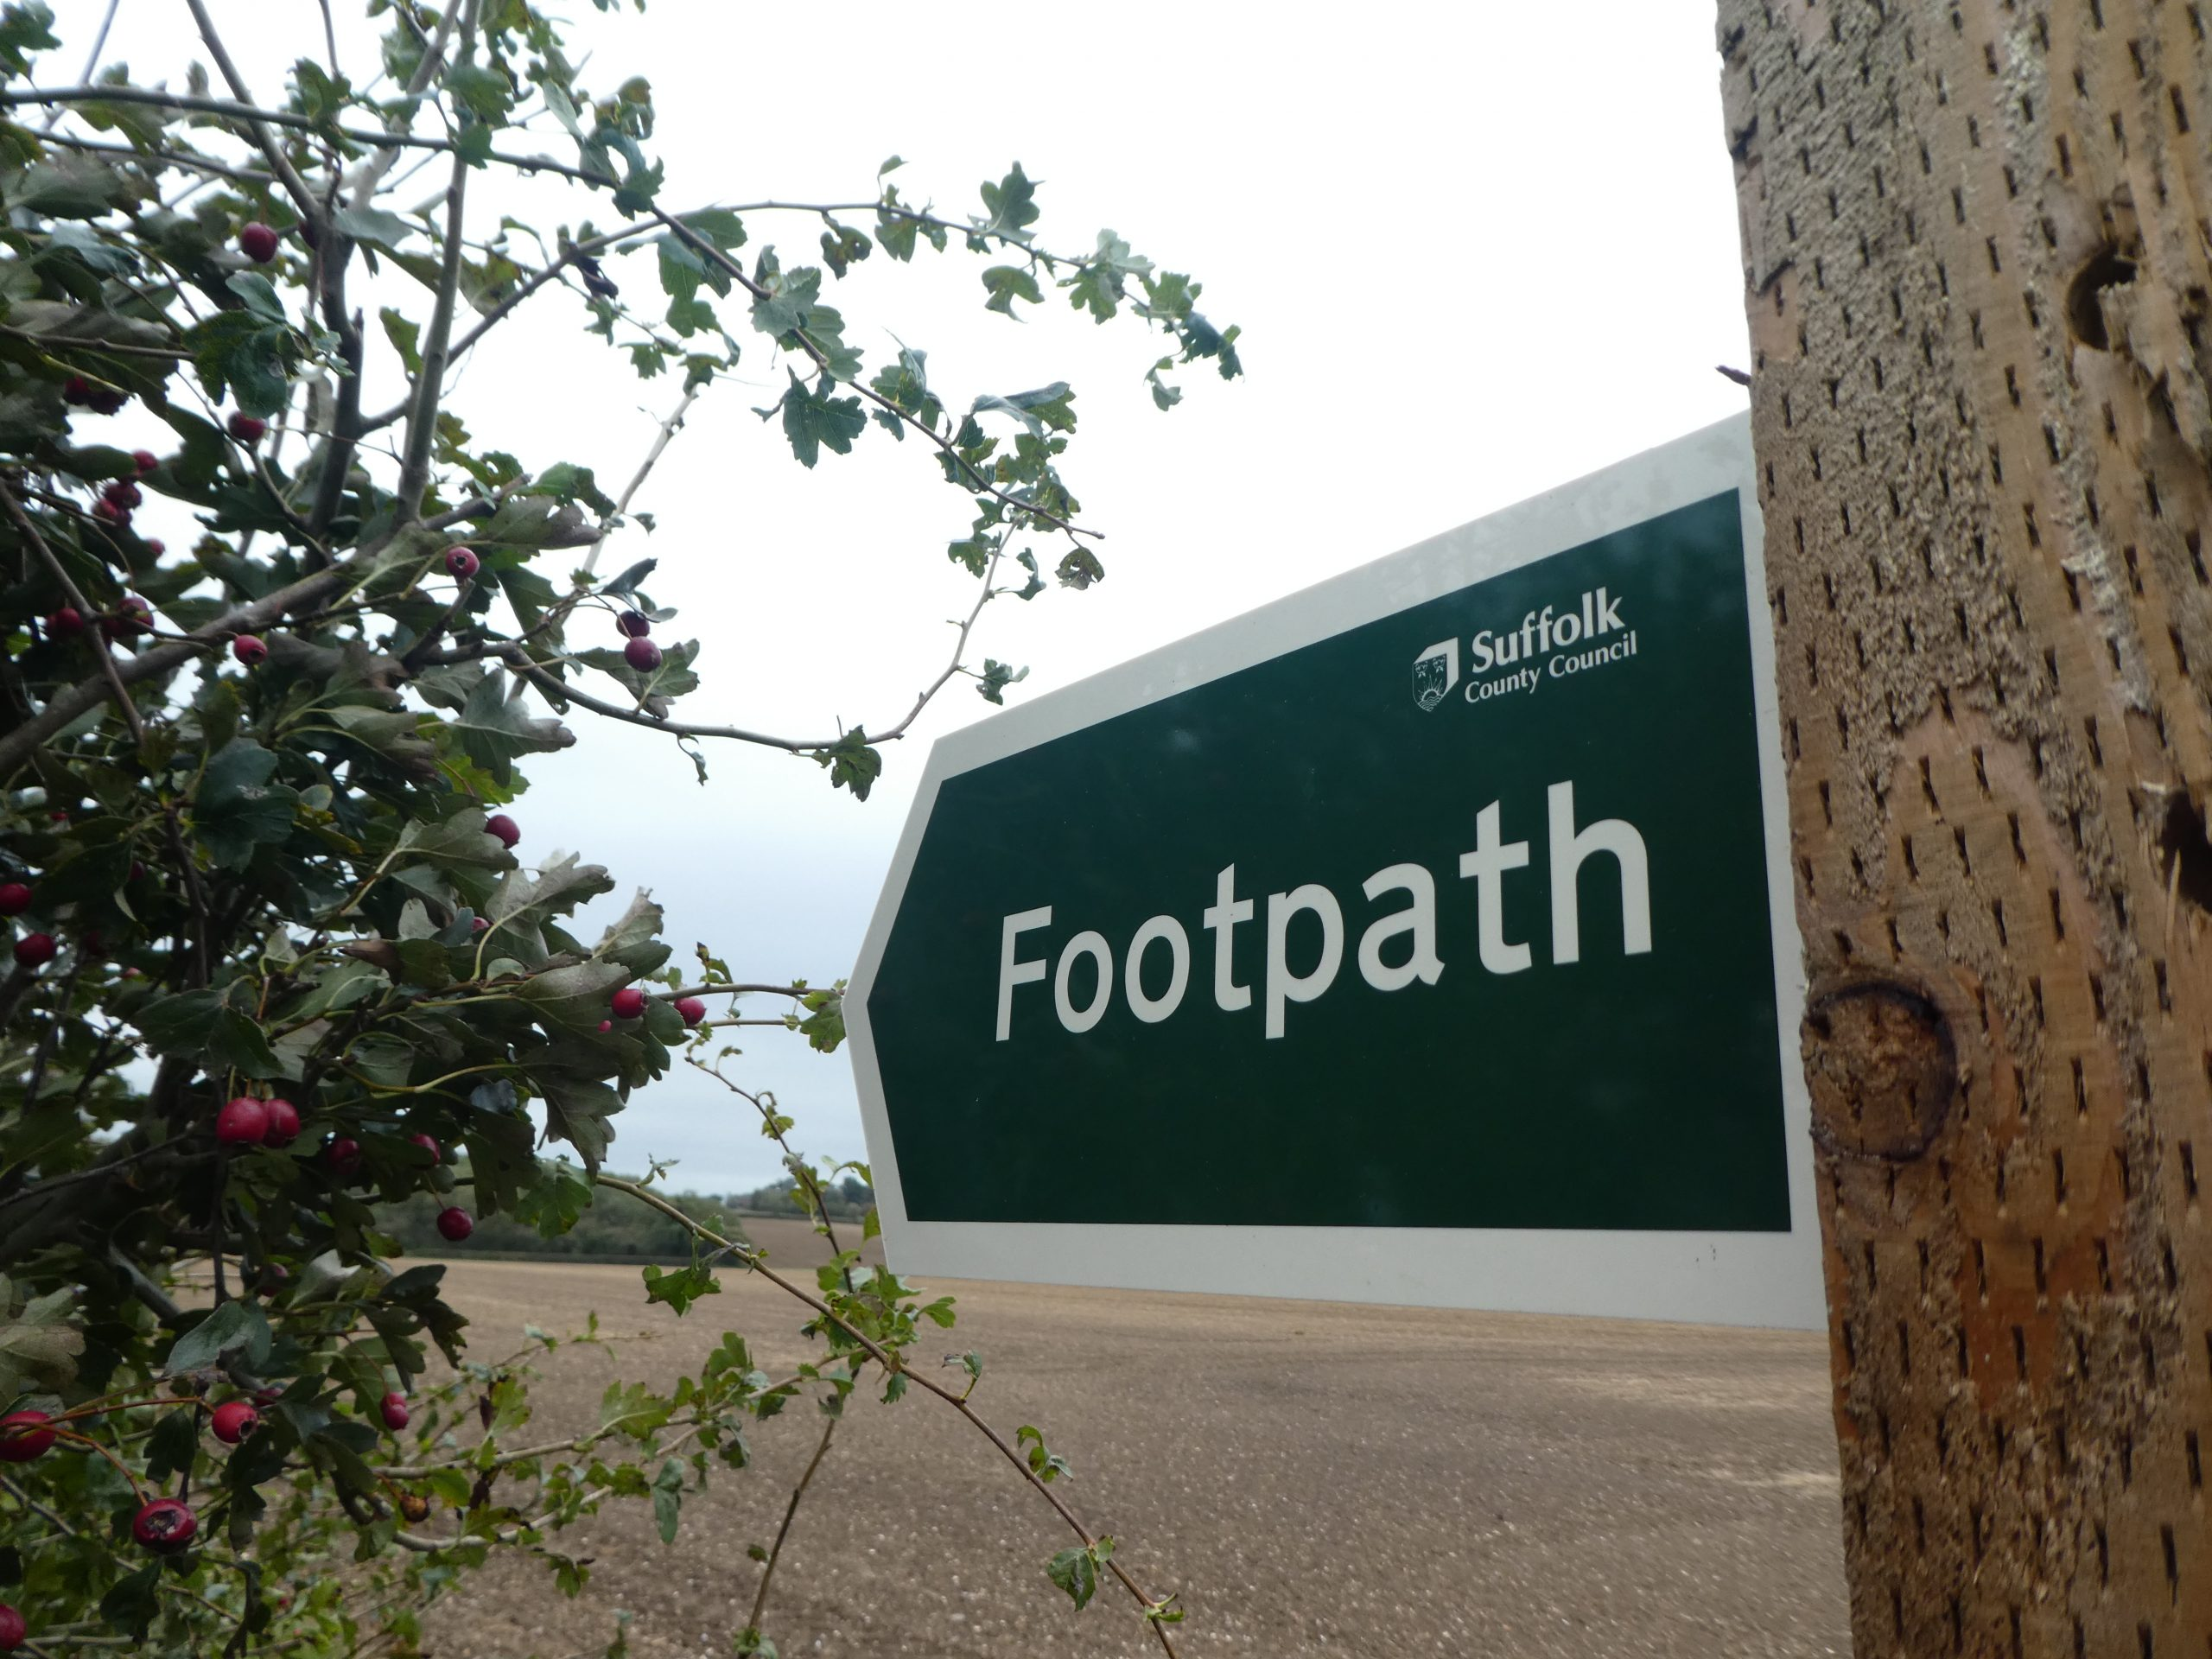 A green sign reading Footpath beside a hedge with red berries